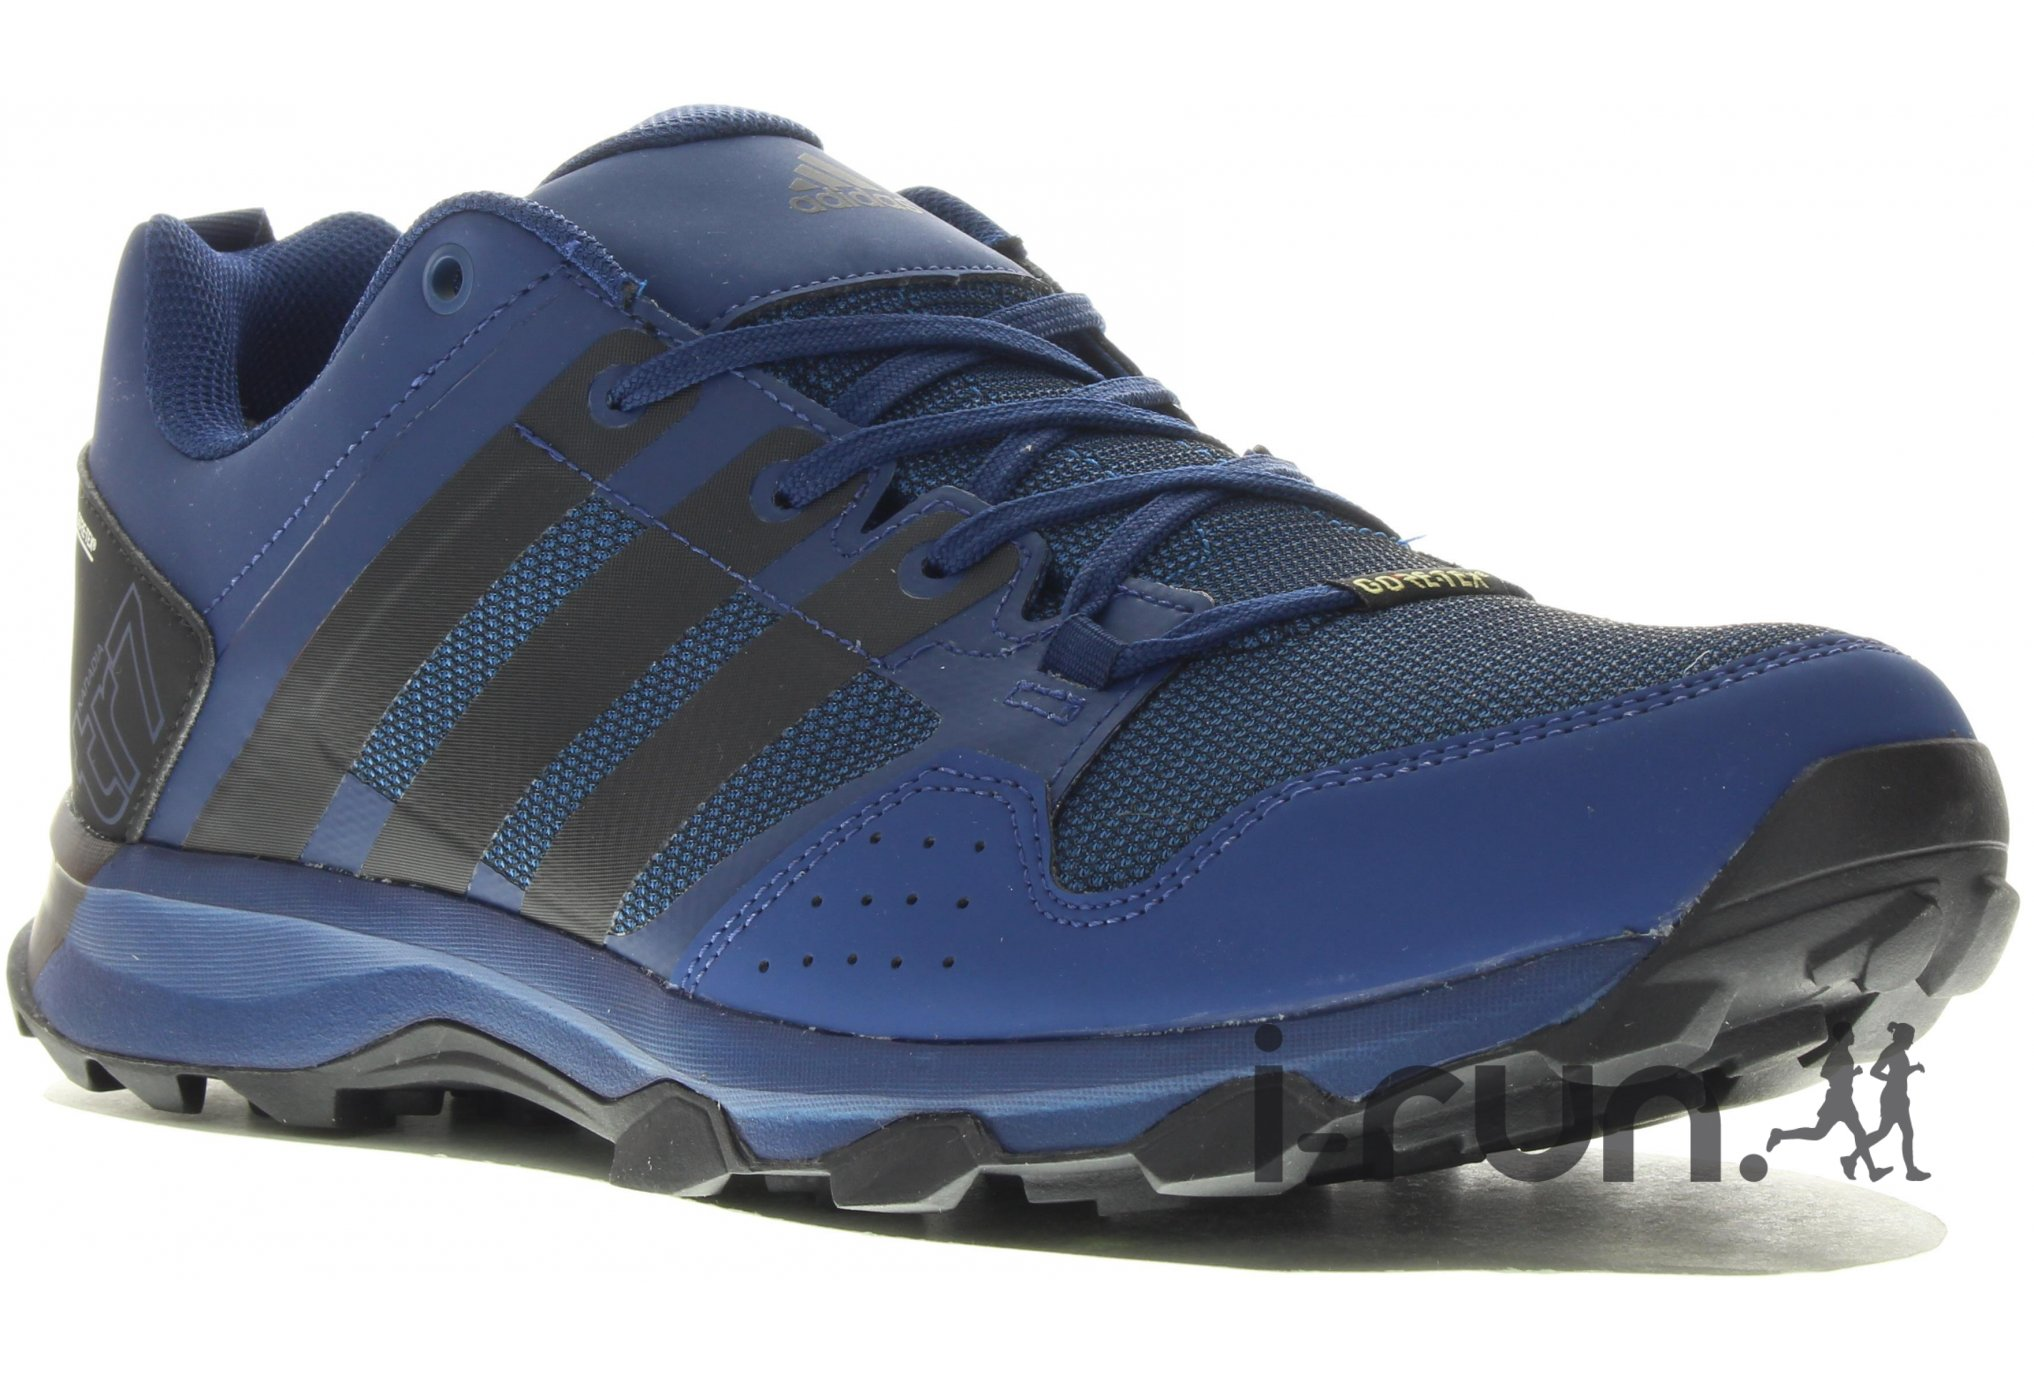 Adidas kanadia 7 tr gore tex m chaussures homme